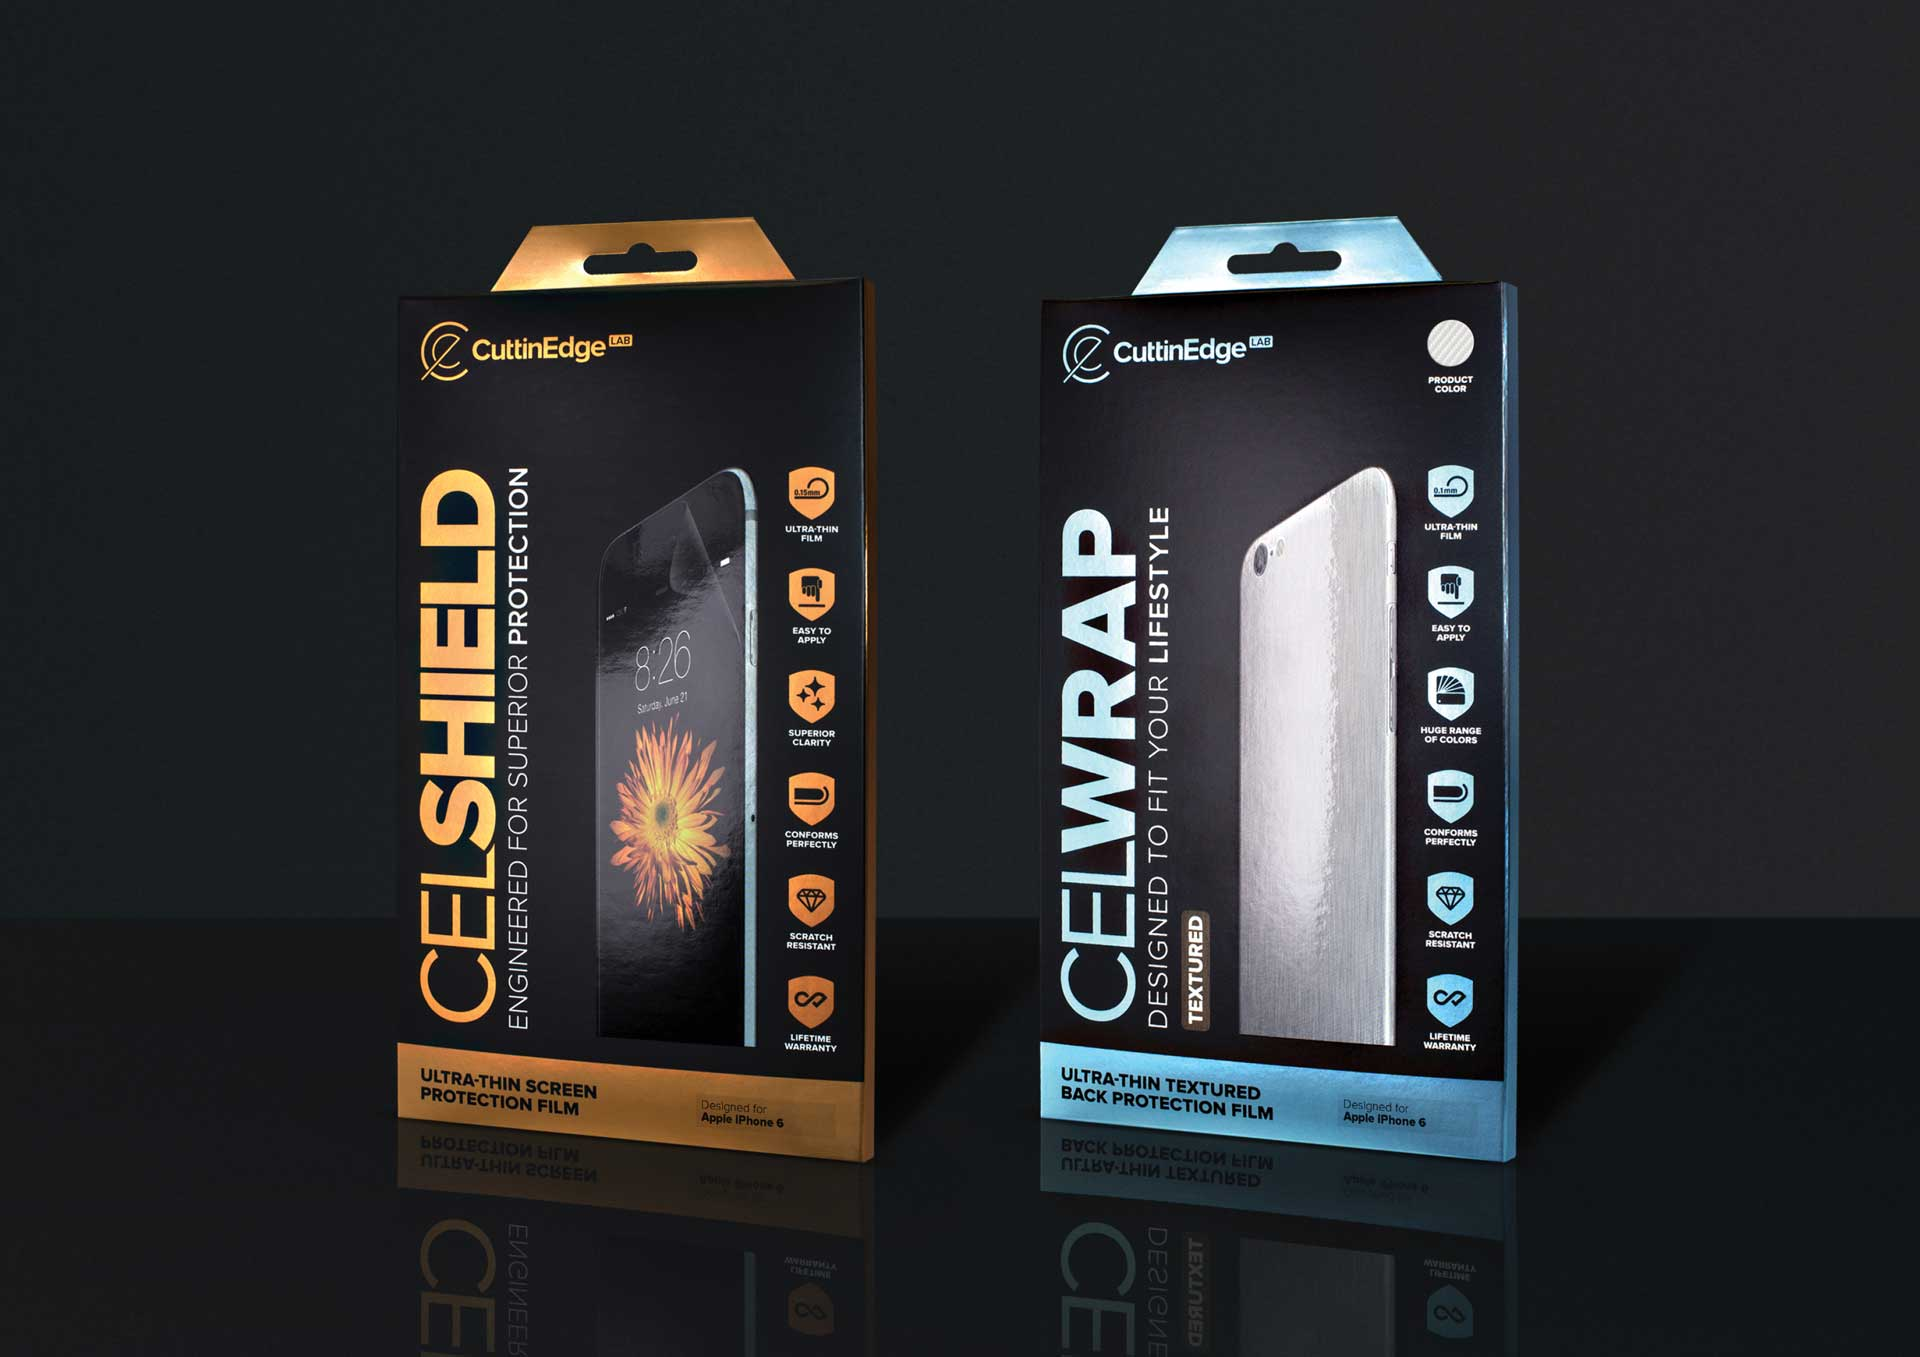 cuttinedge-labs-celshield-celwrap-packaging-1